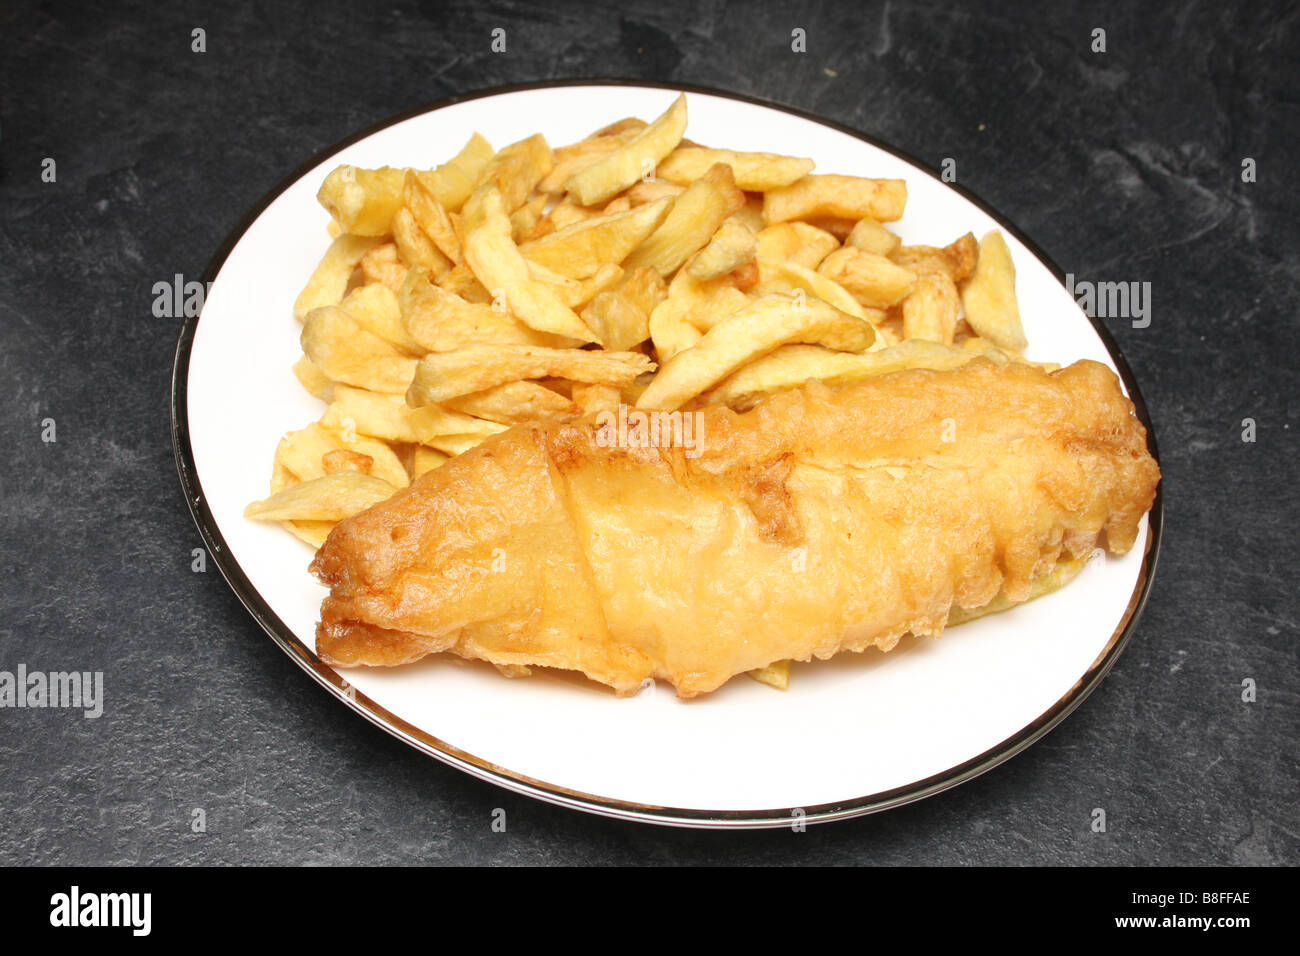 Fish and chips d'une friterie. Photo Stock